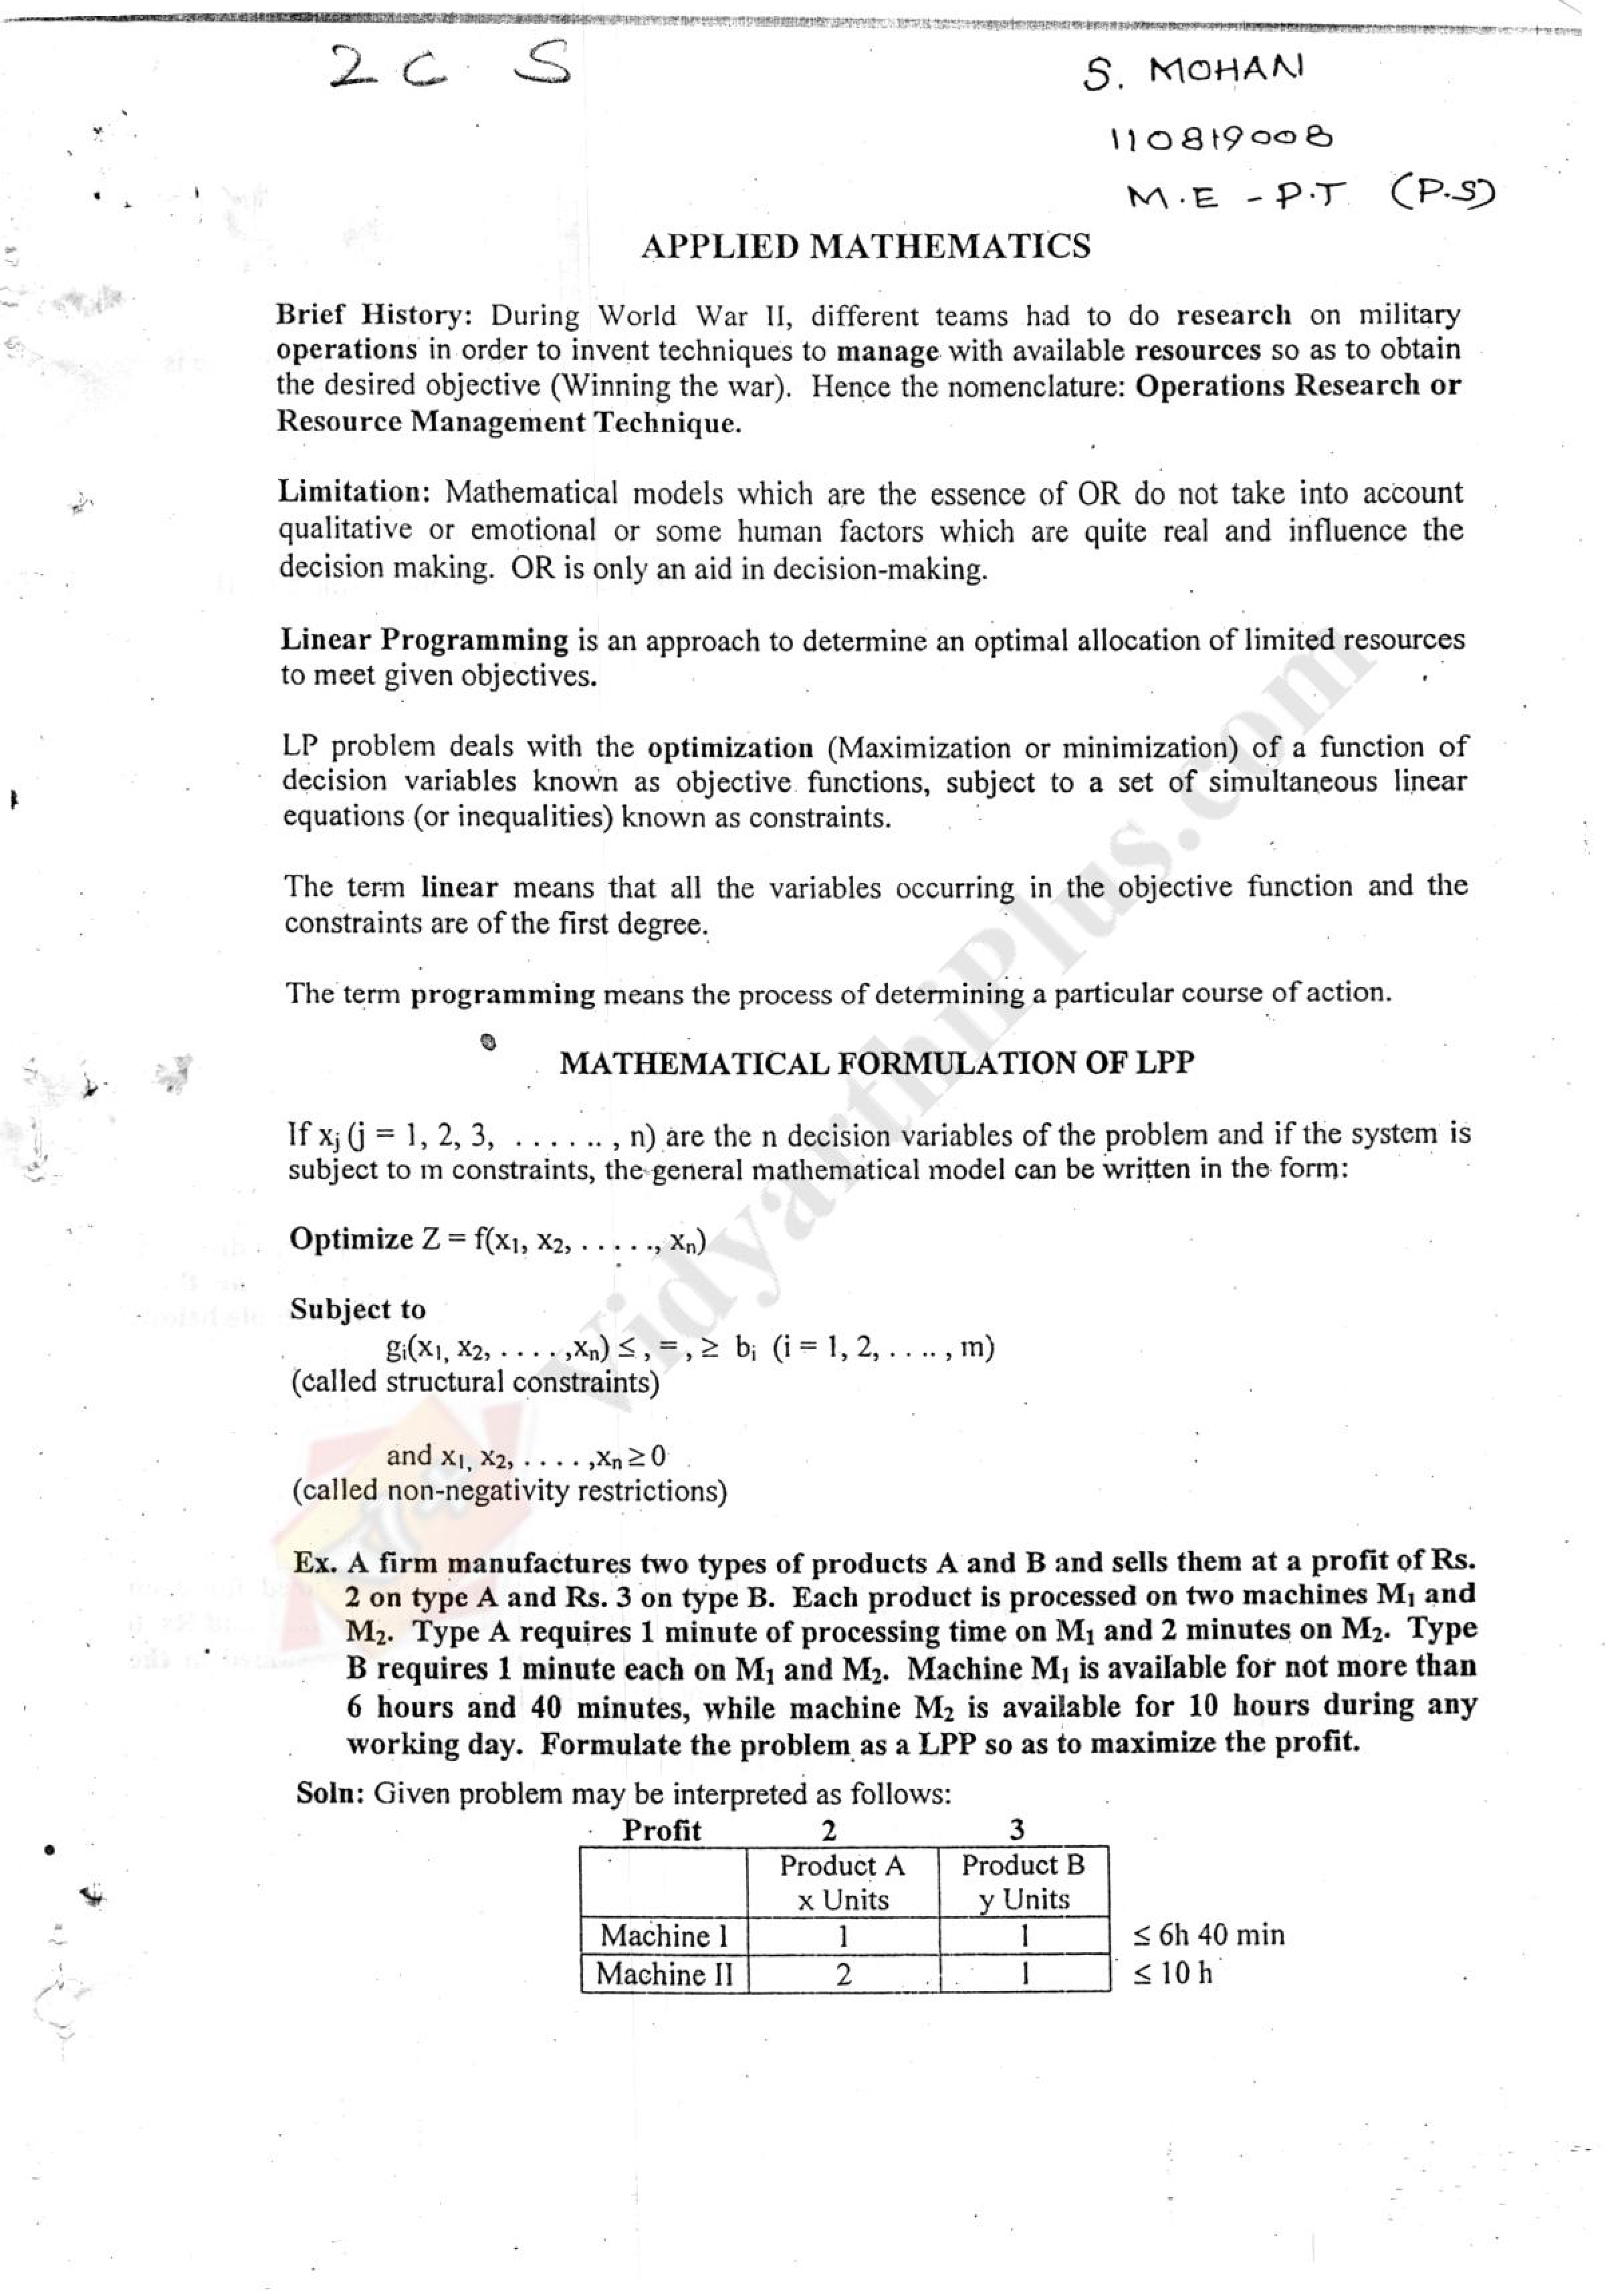 Applied Mathematics Premium Lecture Notes - Mohan Edition